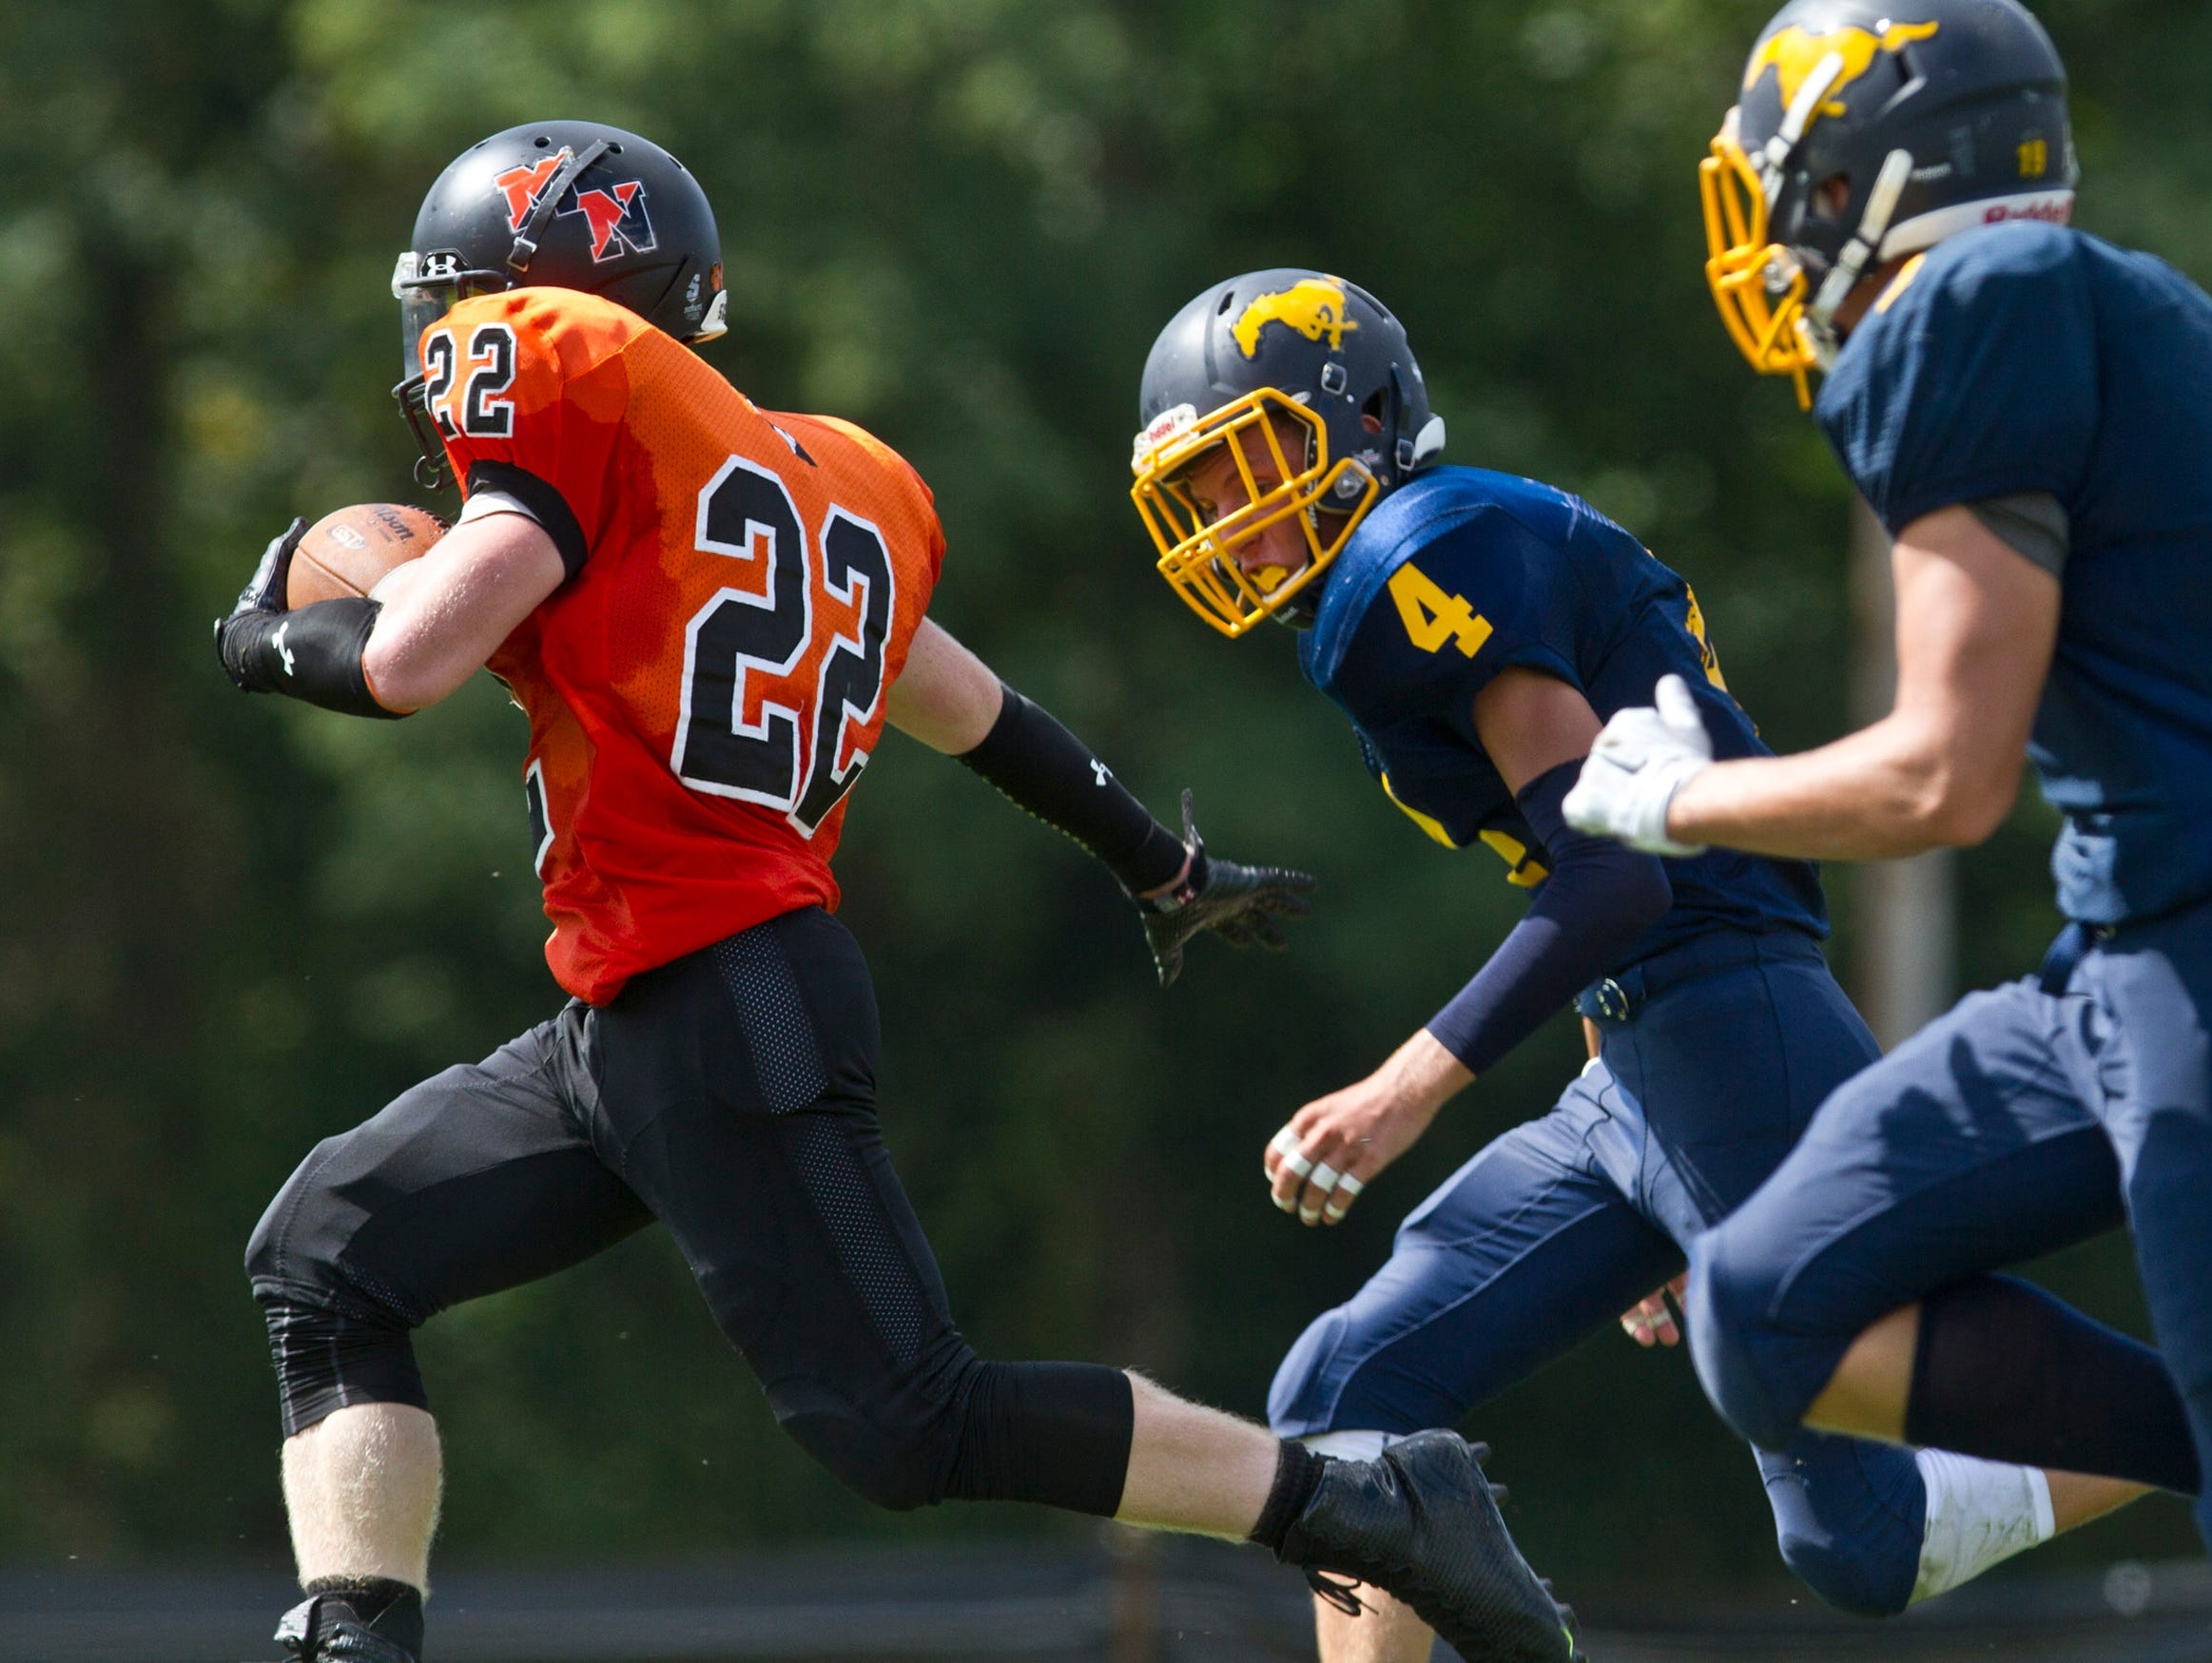 Middletown North's Connor Welsh takes off for the end zone . Middletown North vs Marlboro football. Marlboro, NJ Saturday, September 19, 2015 @dhoodhood